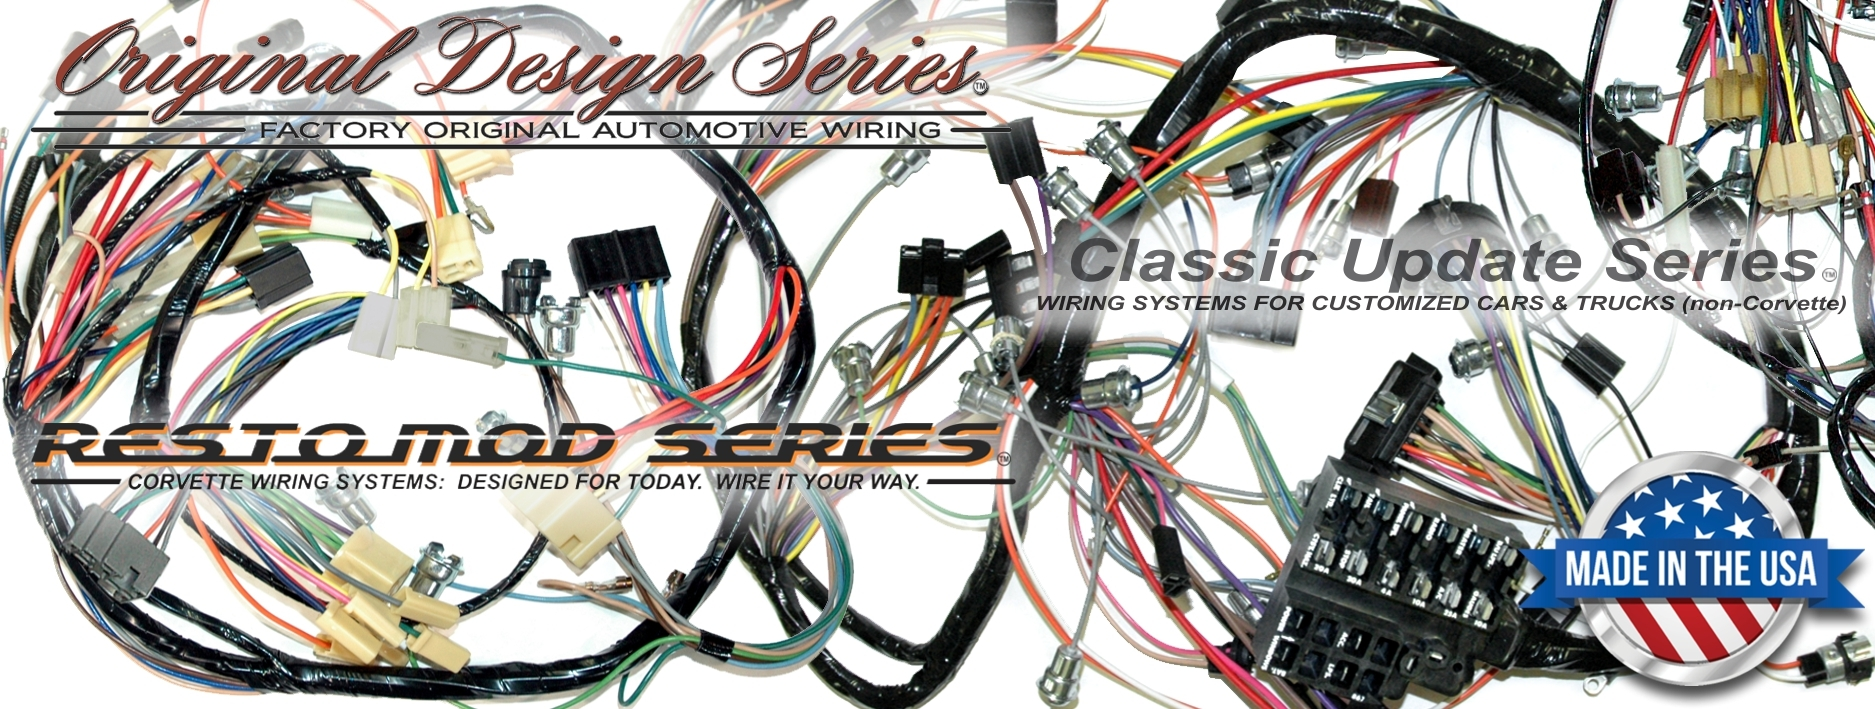 new header wiring_harnesses exact oem reproduction wiring harnesses and restomod wiring c3 corvette engine wiring harness at n-0.co